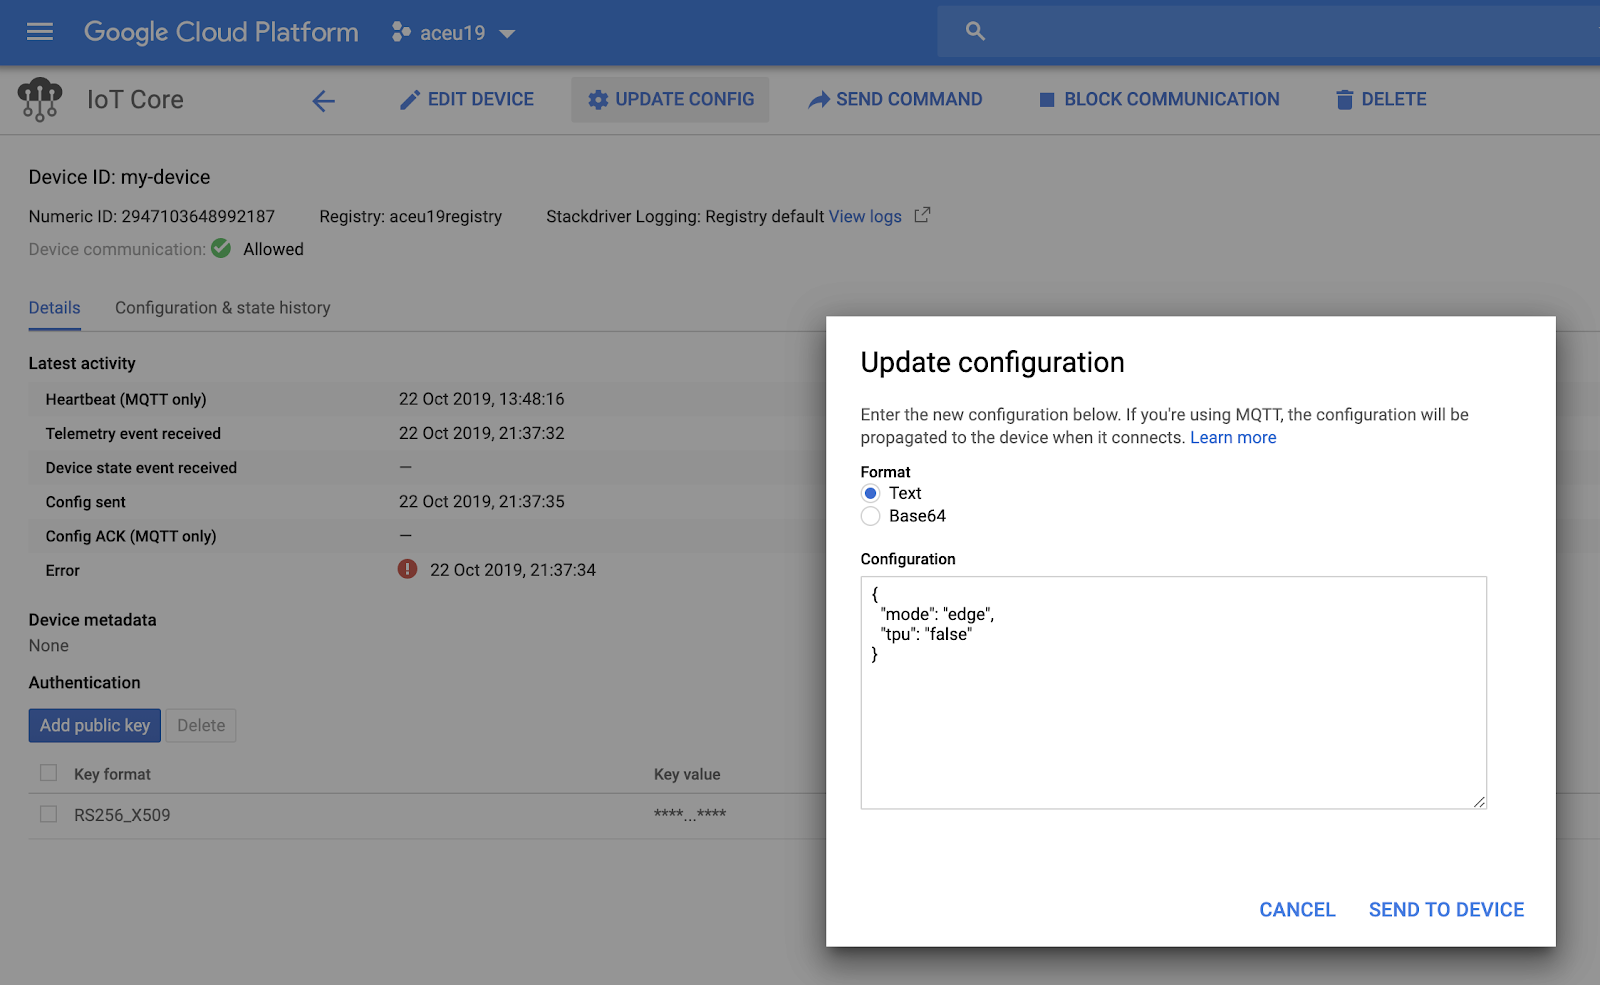 Updating the configuration of my device through MQTT